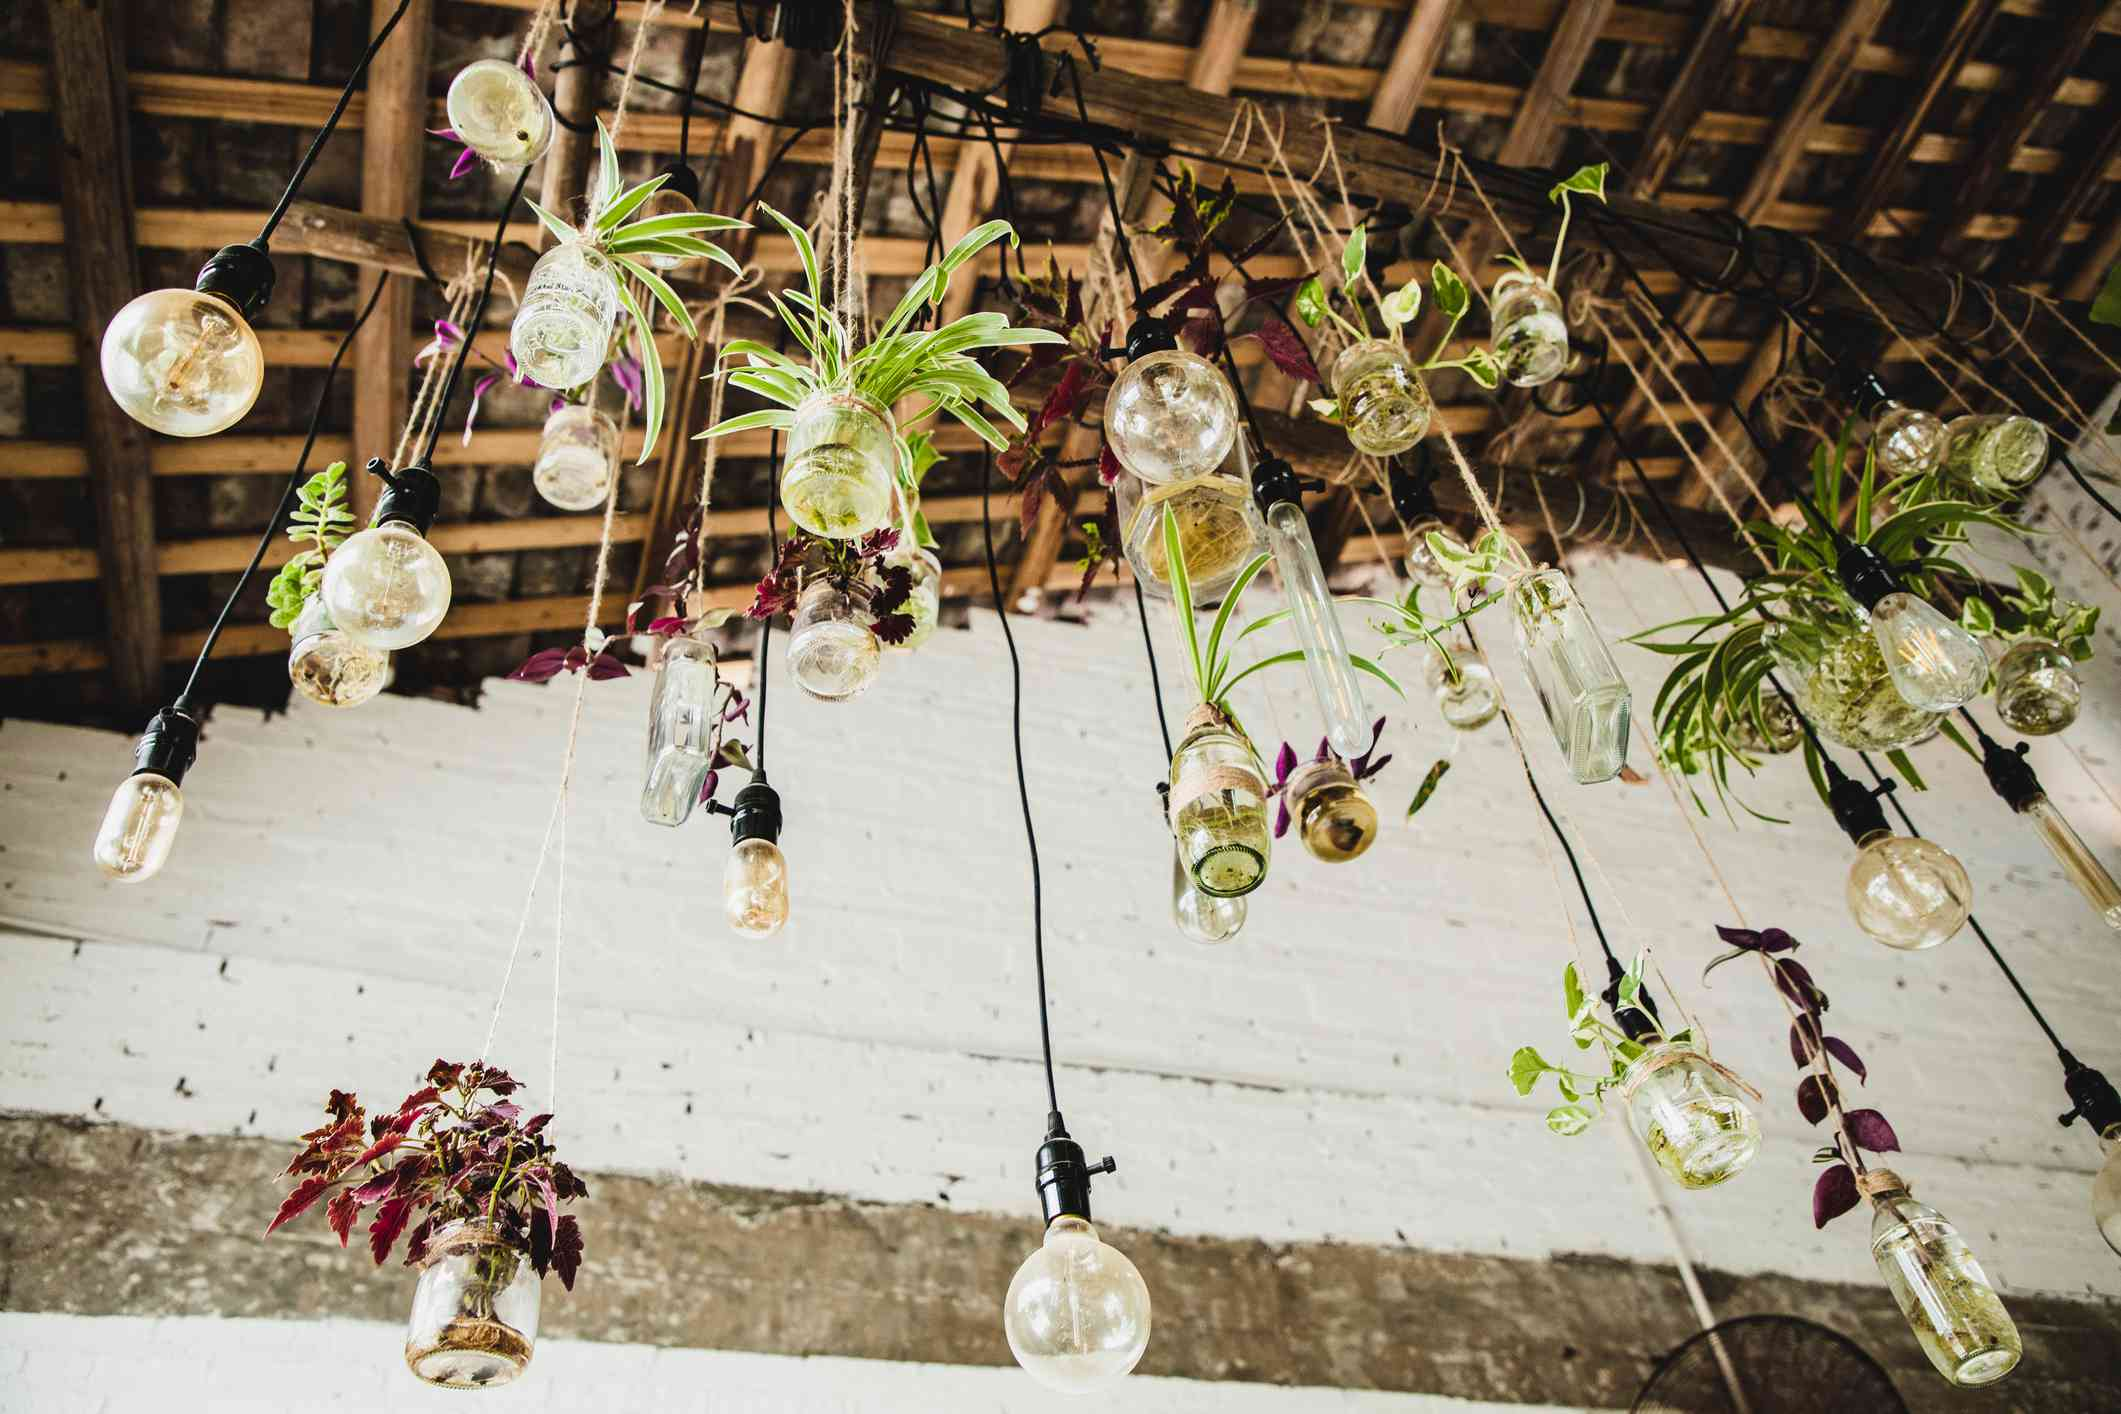 Shot from below - several glass containers hang with plants from a ceiling light.